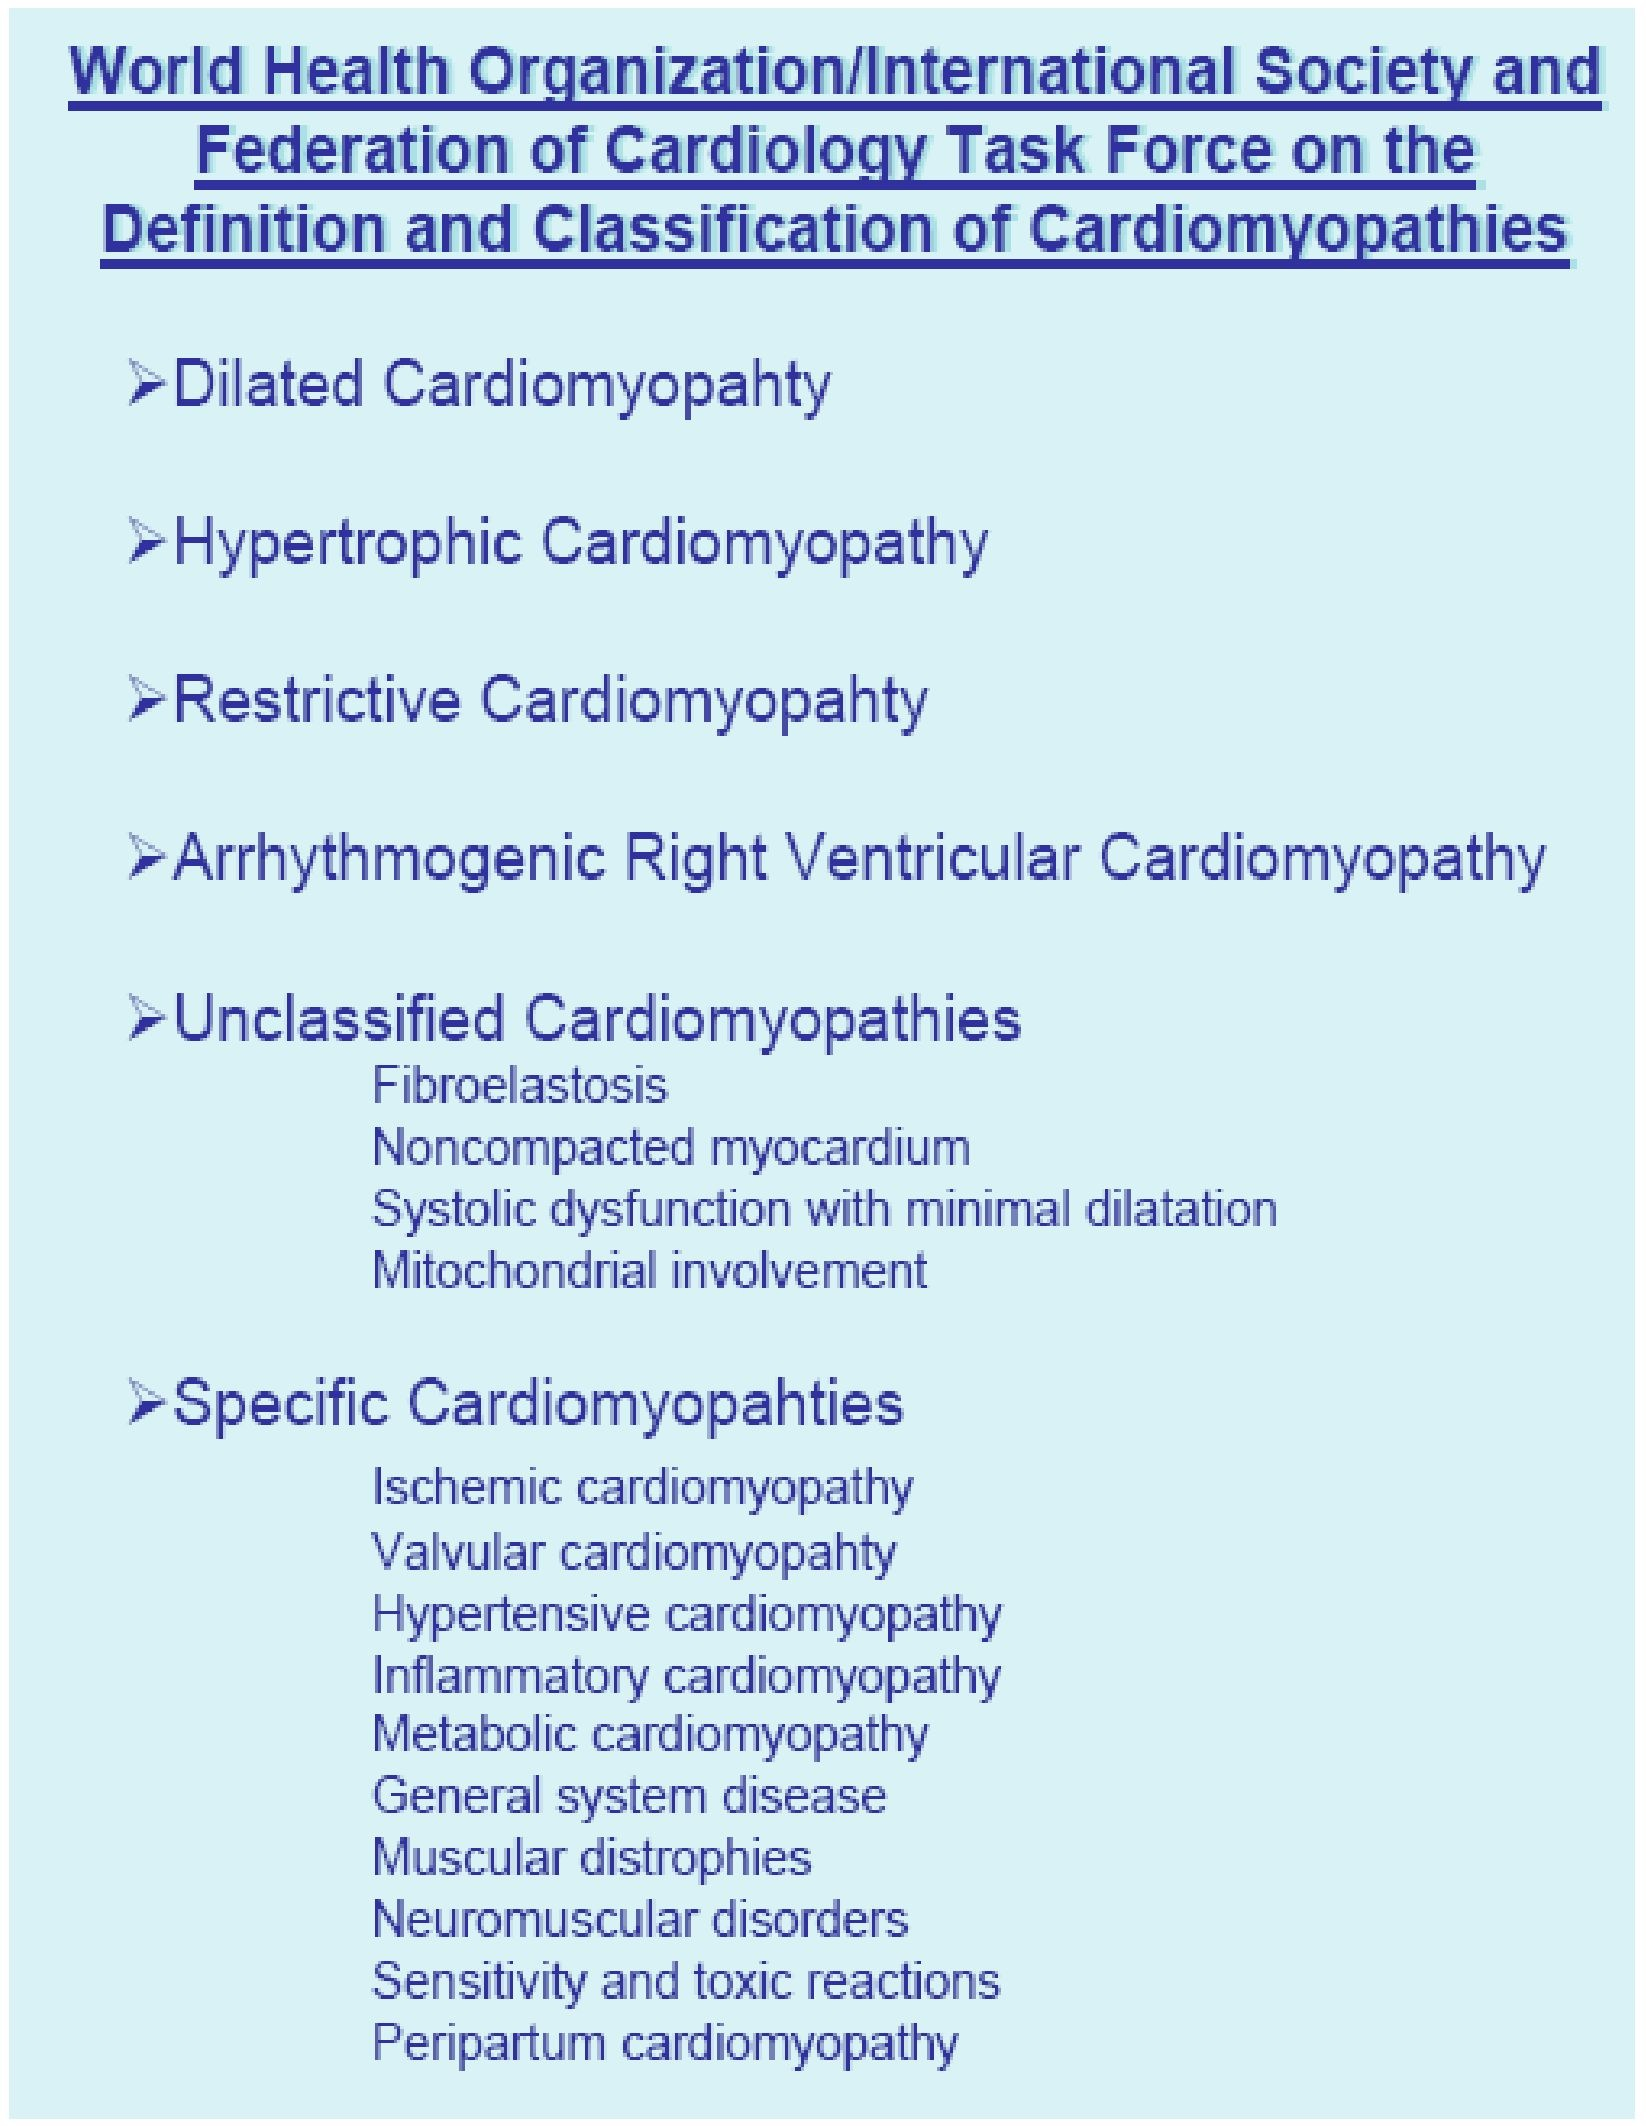 Diagnosis of Cardiomyopathies and Rare Diseases: From